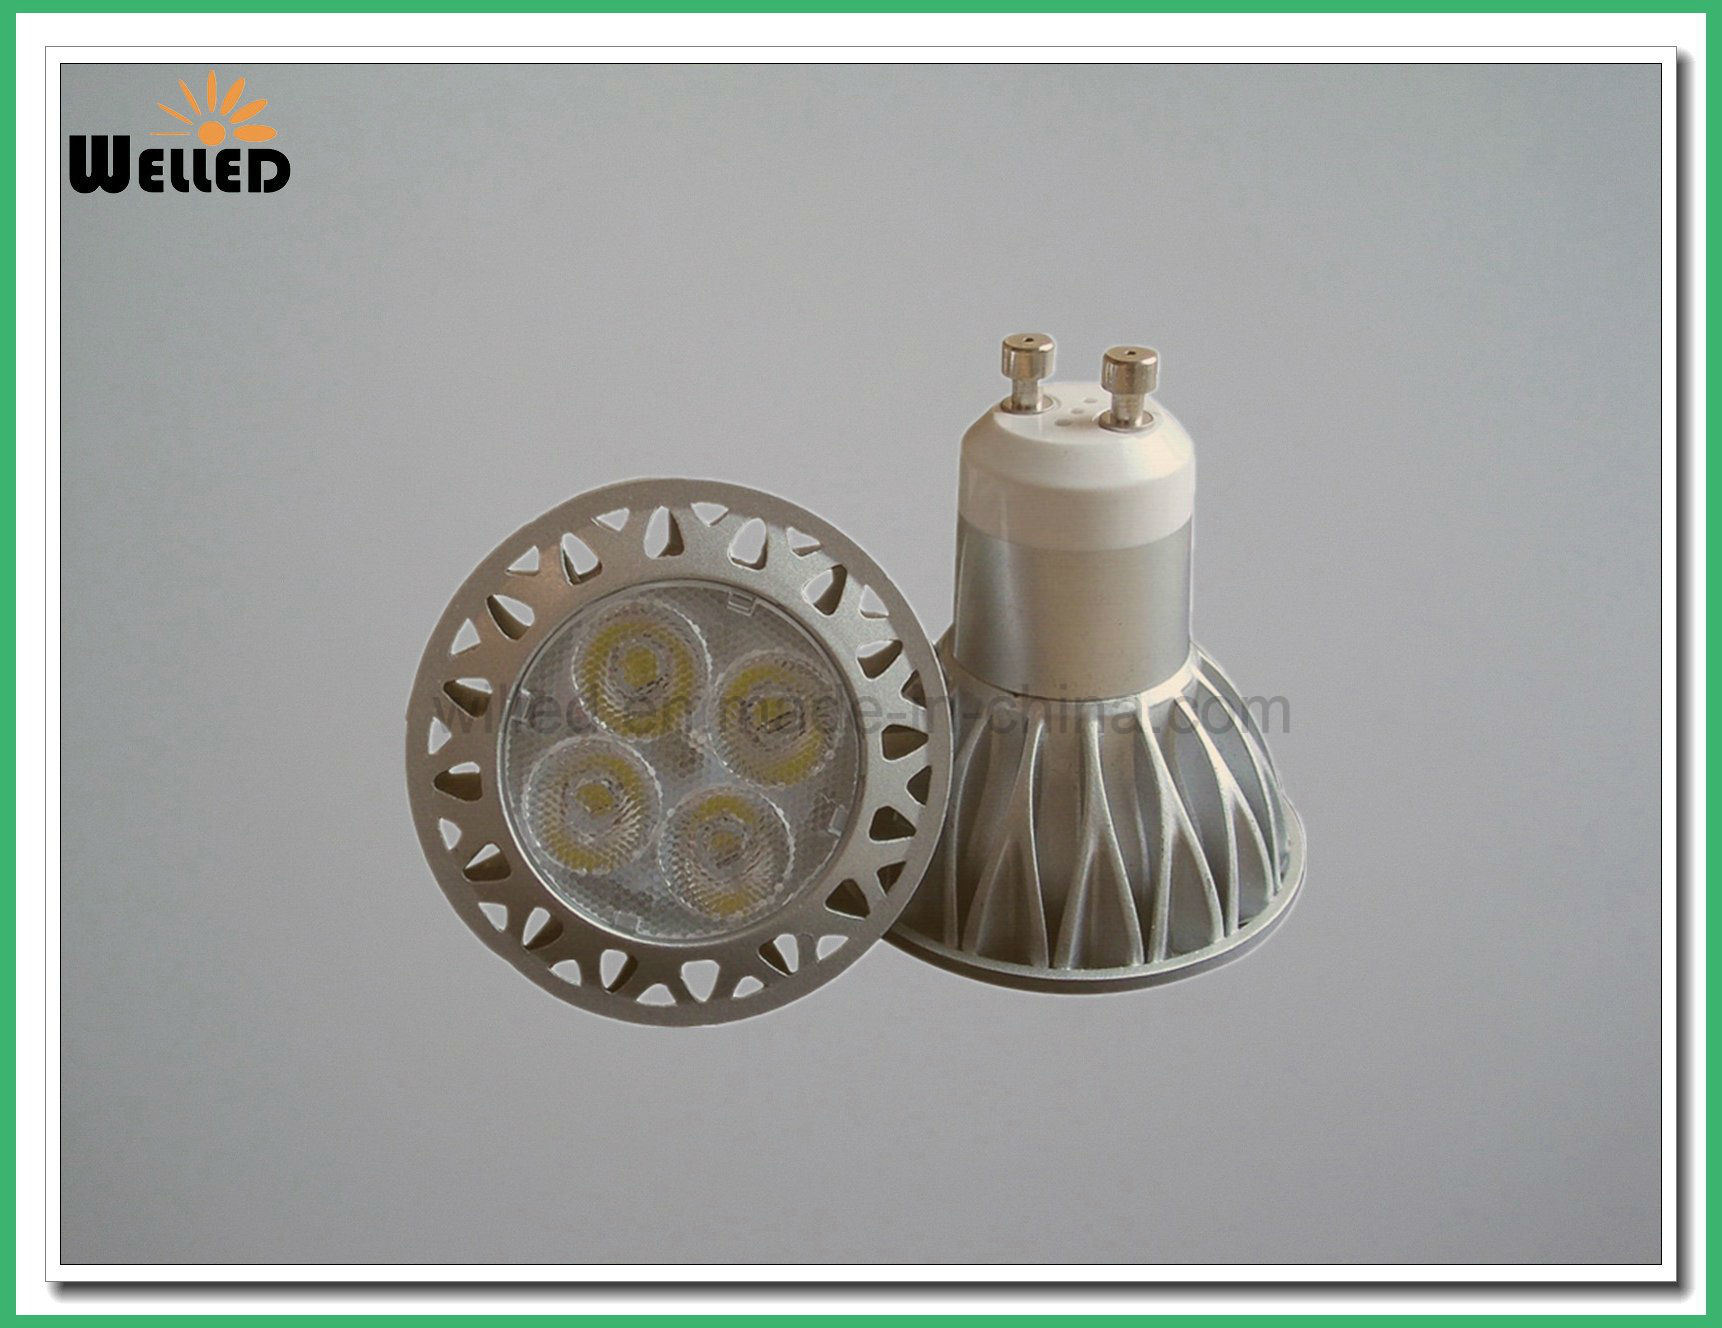 5W 6W GU10 LED Bulb Lamp AC85-265V SMD LED Lamp Light GU10 Gu5.3 for Recessed LED Downlight Fitting